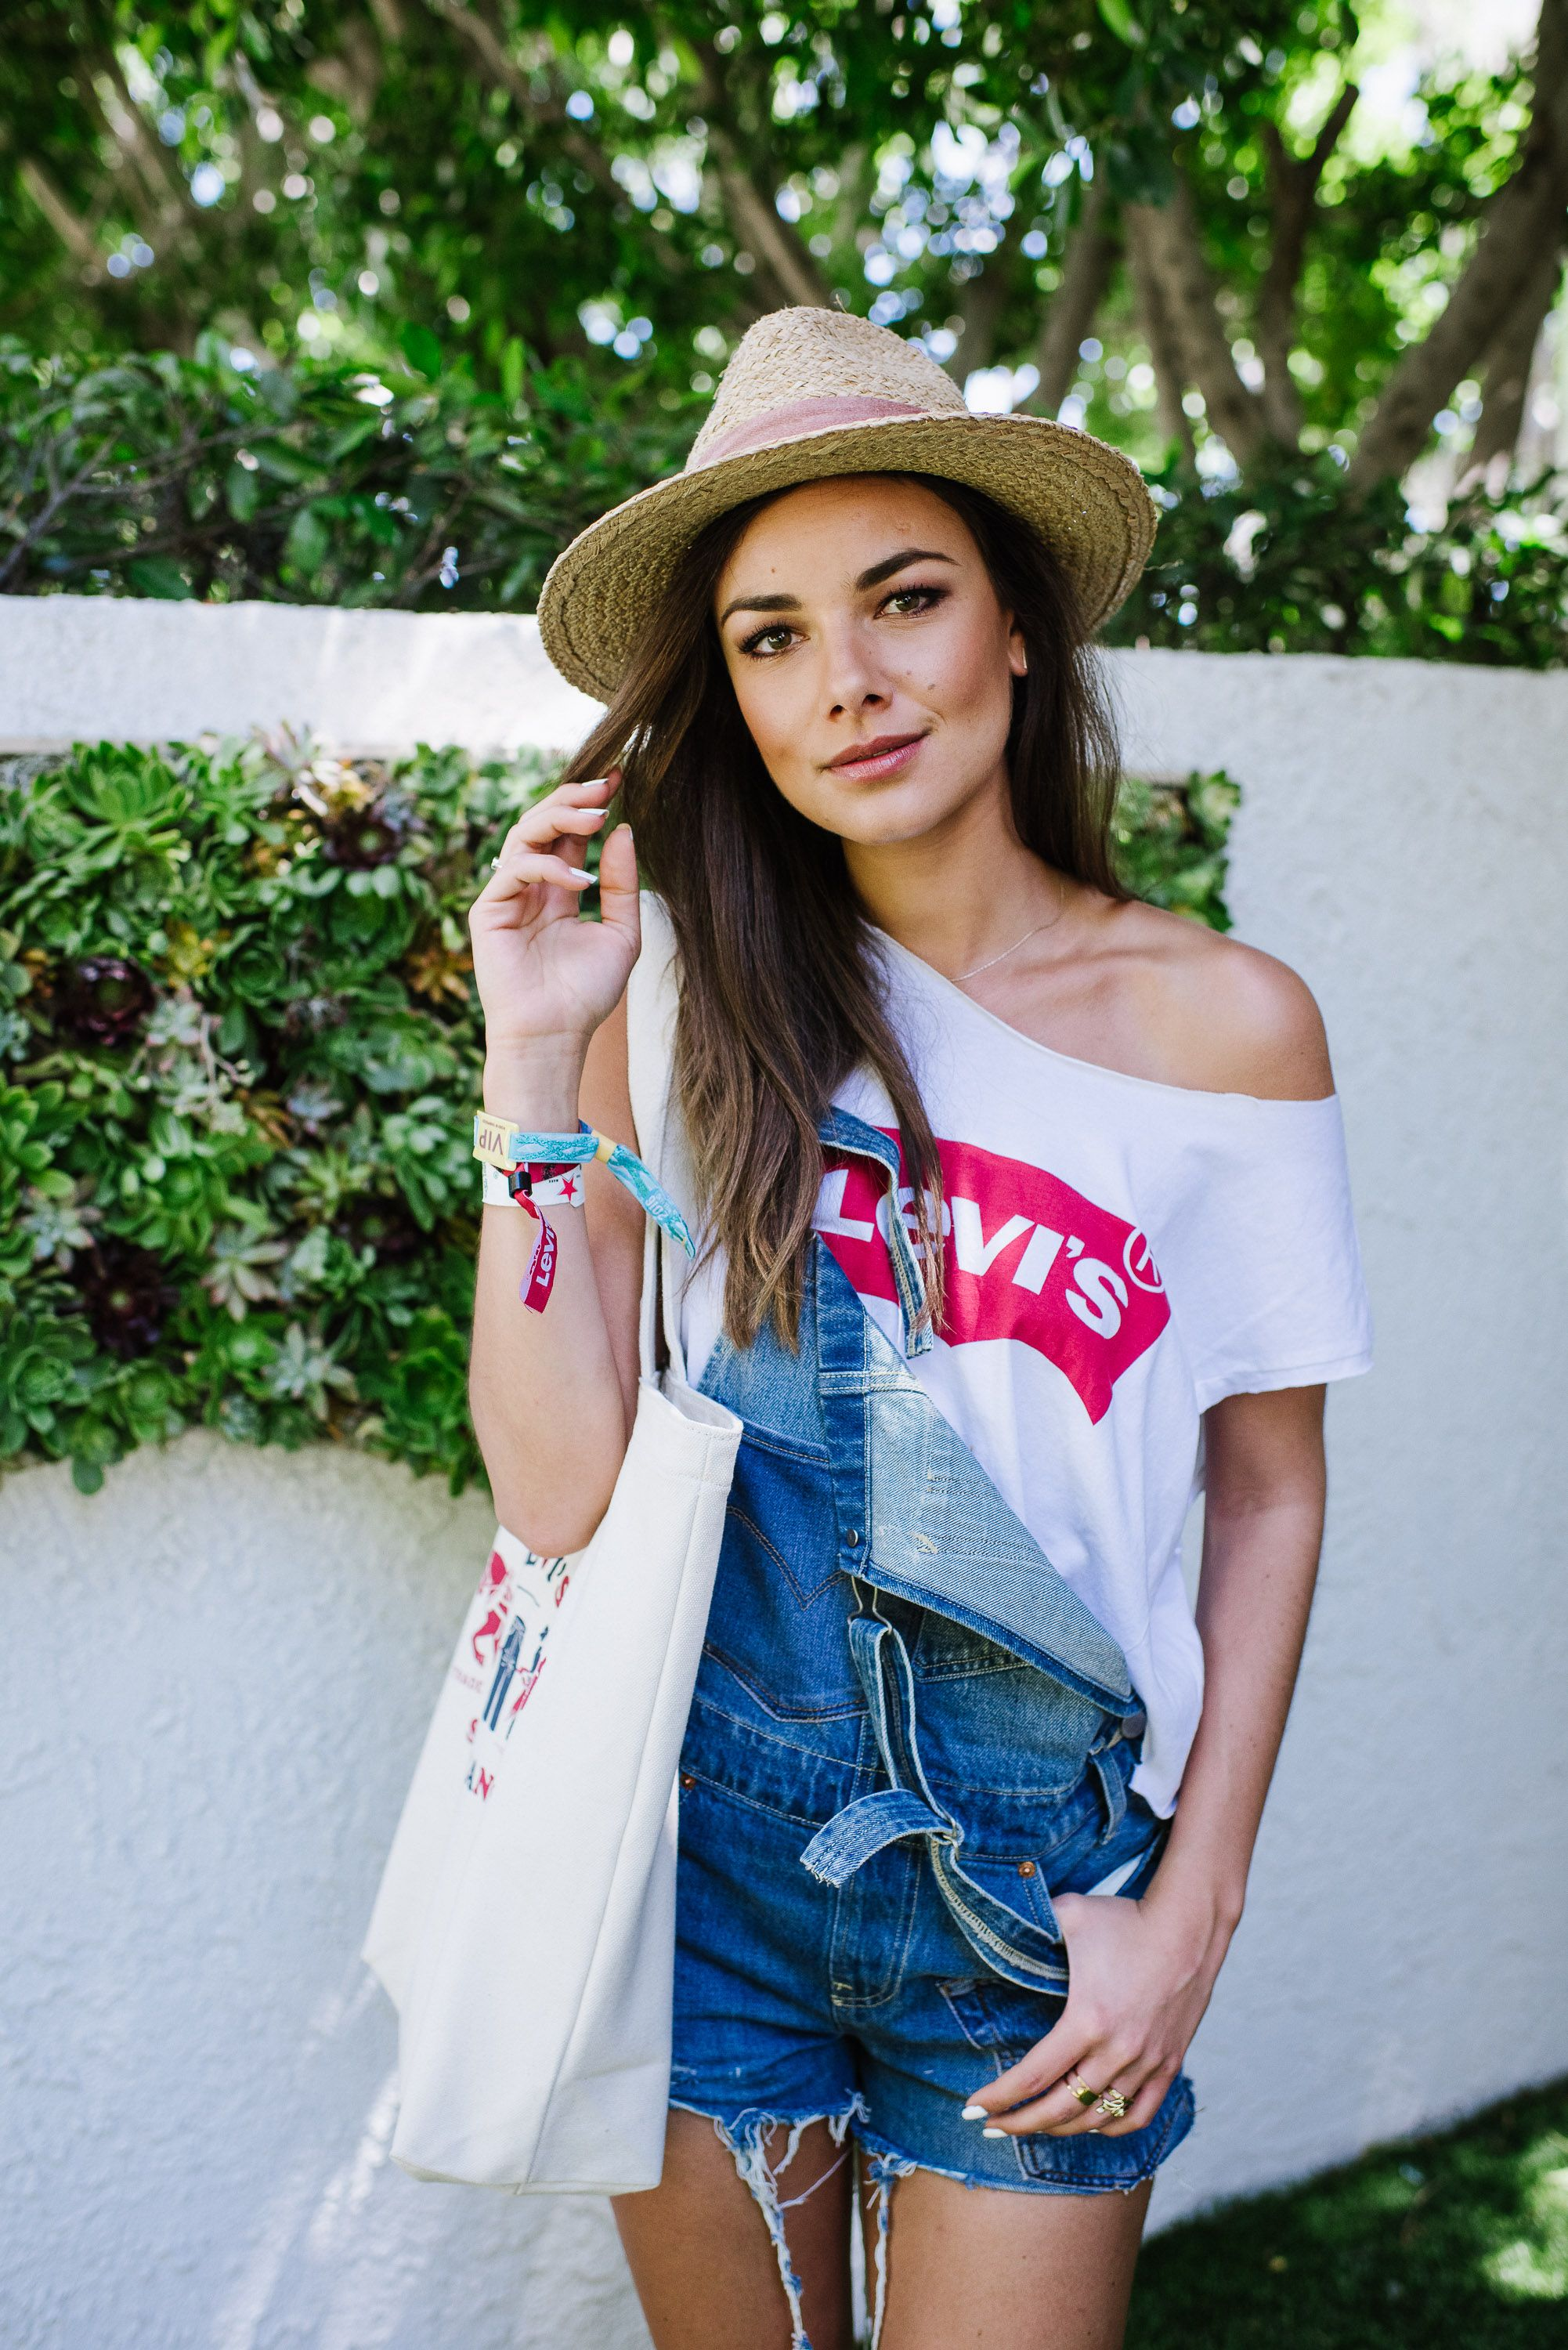 e615d66f5851 Janina Uhse pairs her Levi s graphic t-shirt with easy denim overalls and a  straw hat to top it off.  LadiesInLevis